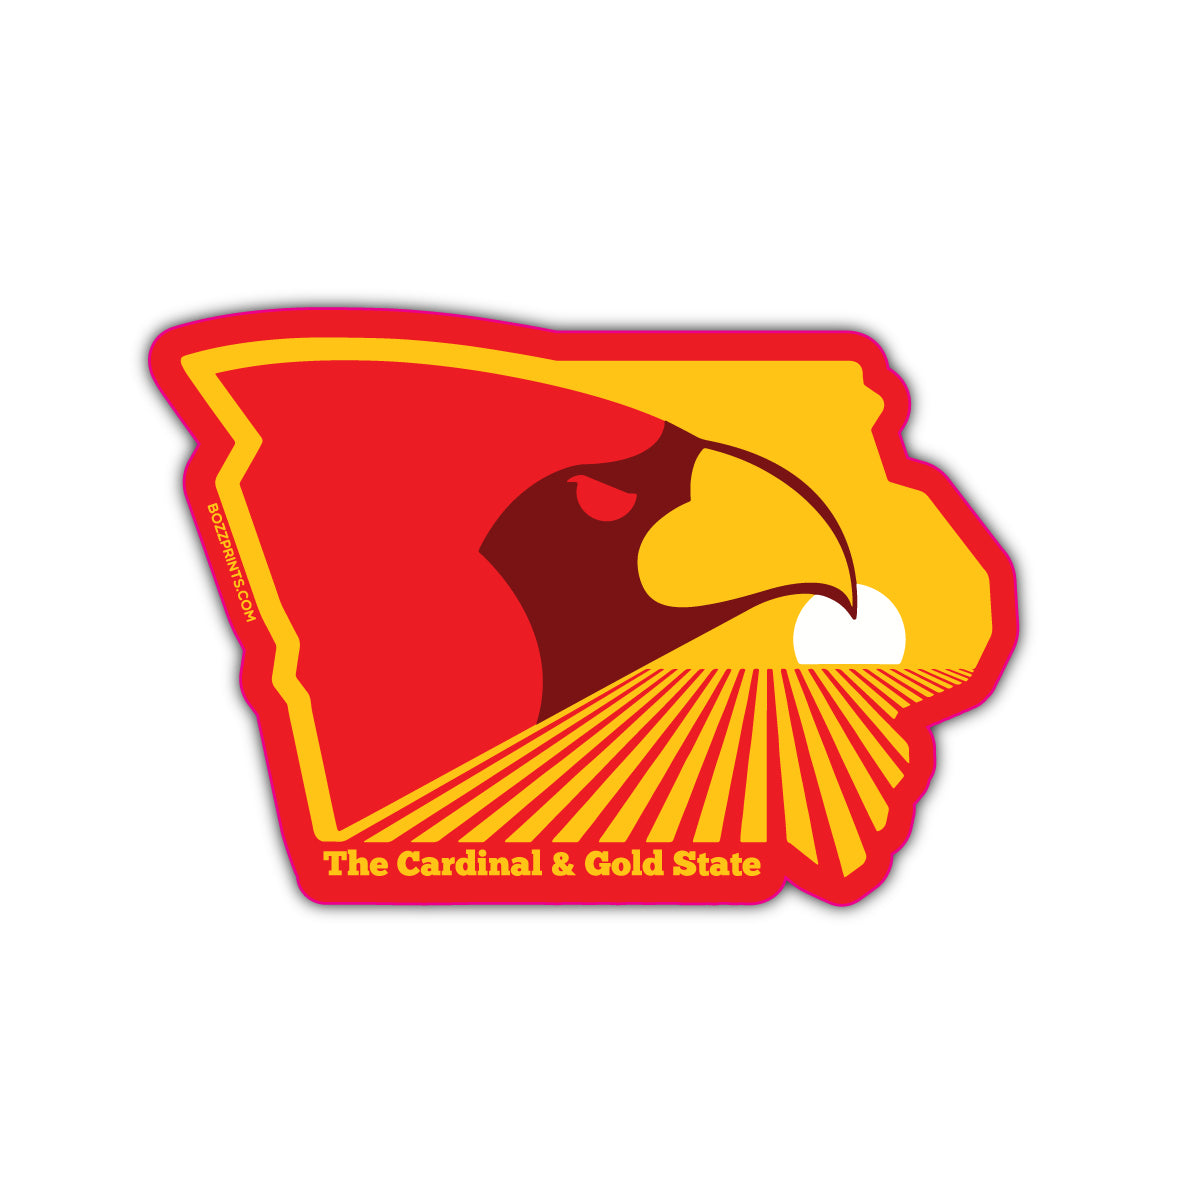 The Cardinal & Gold State